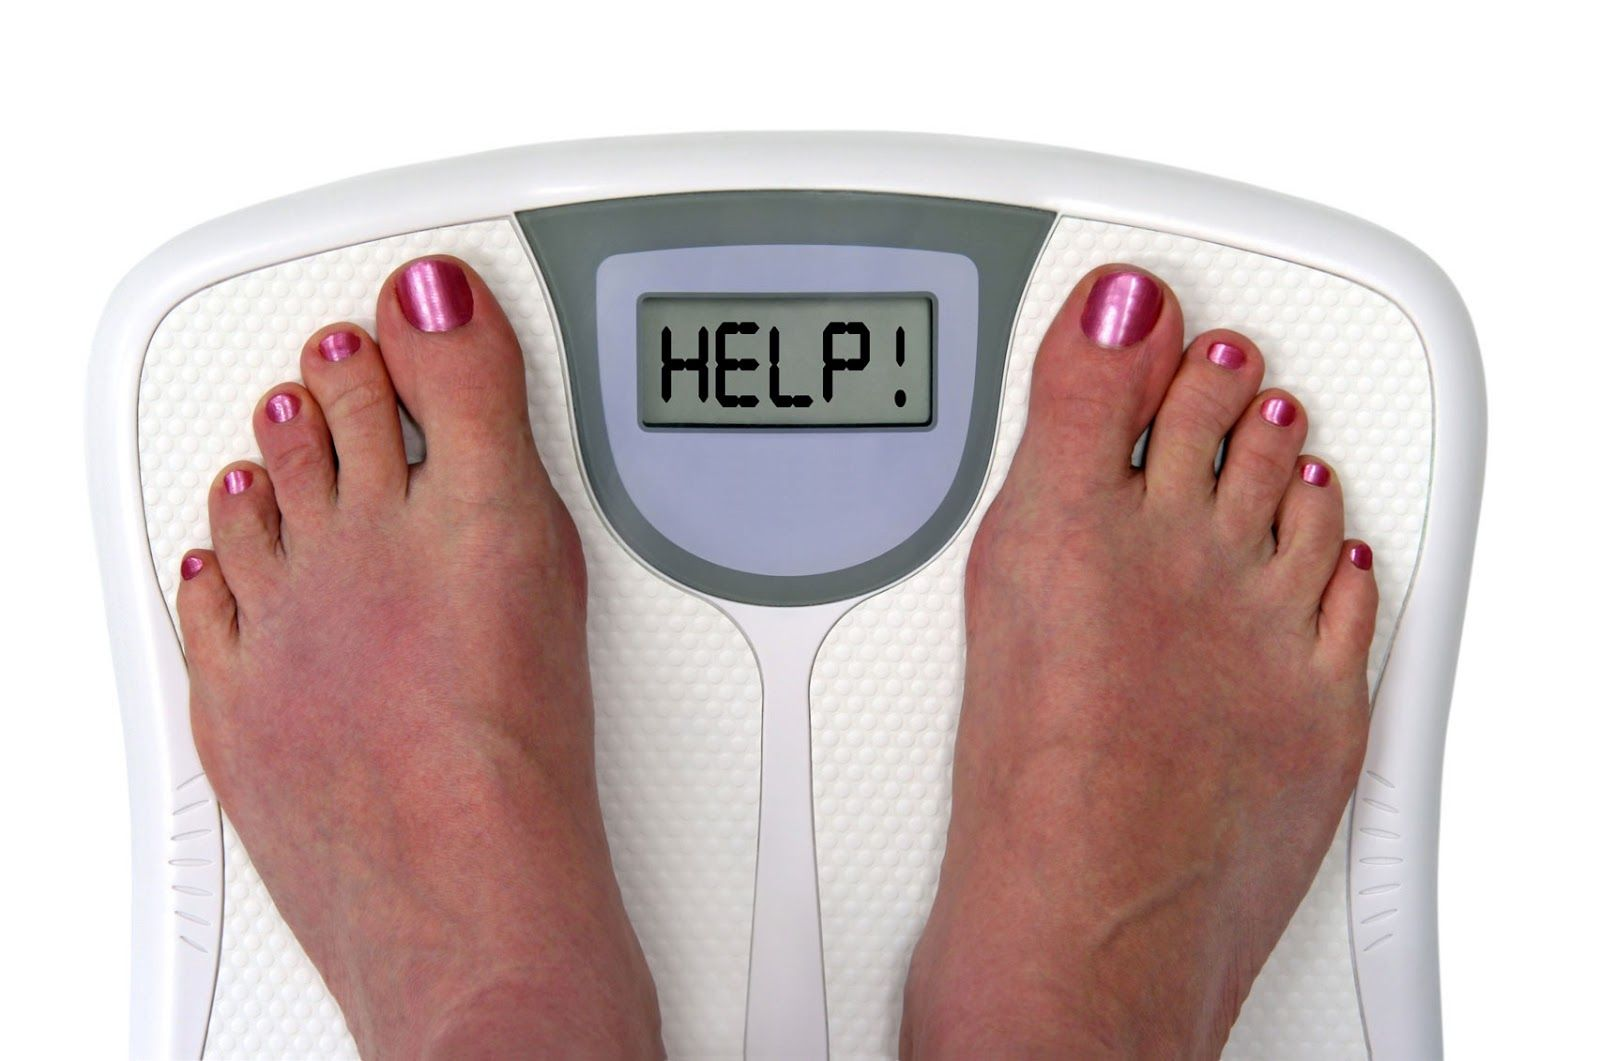 The most dangerous weight loss techniques